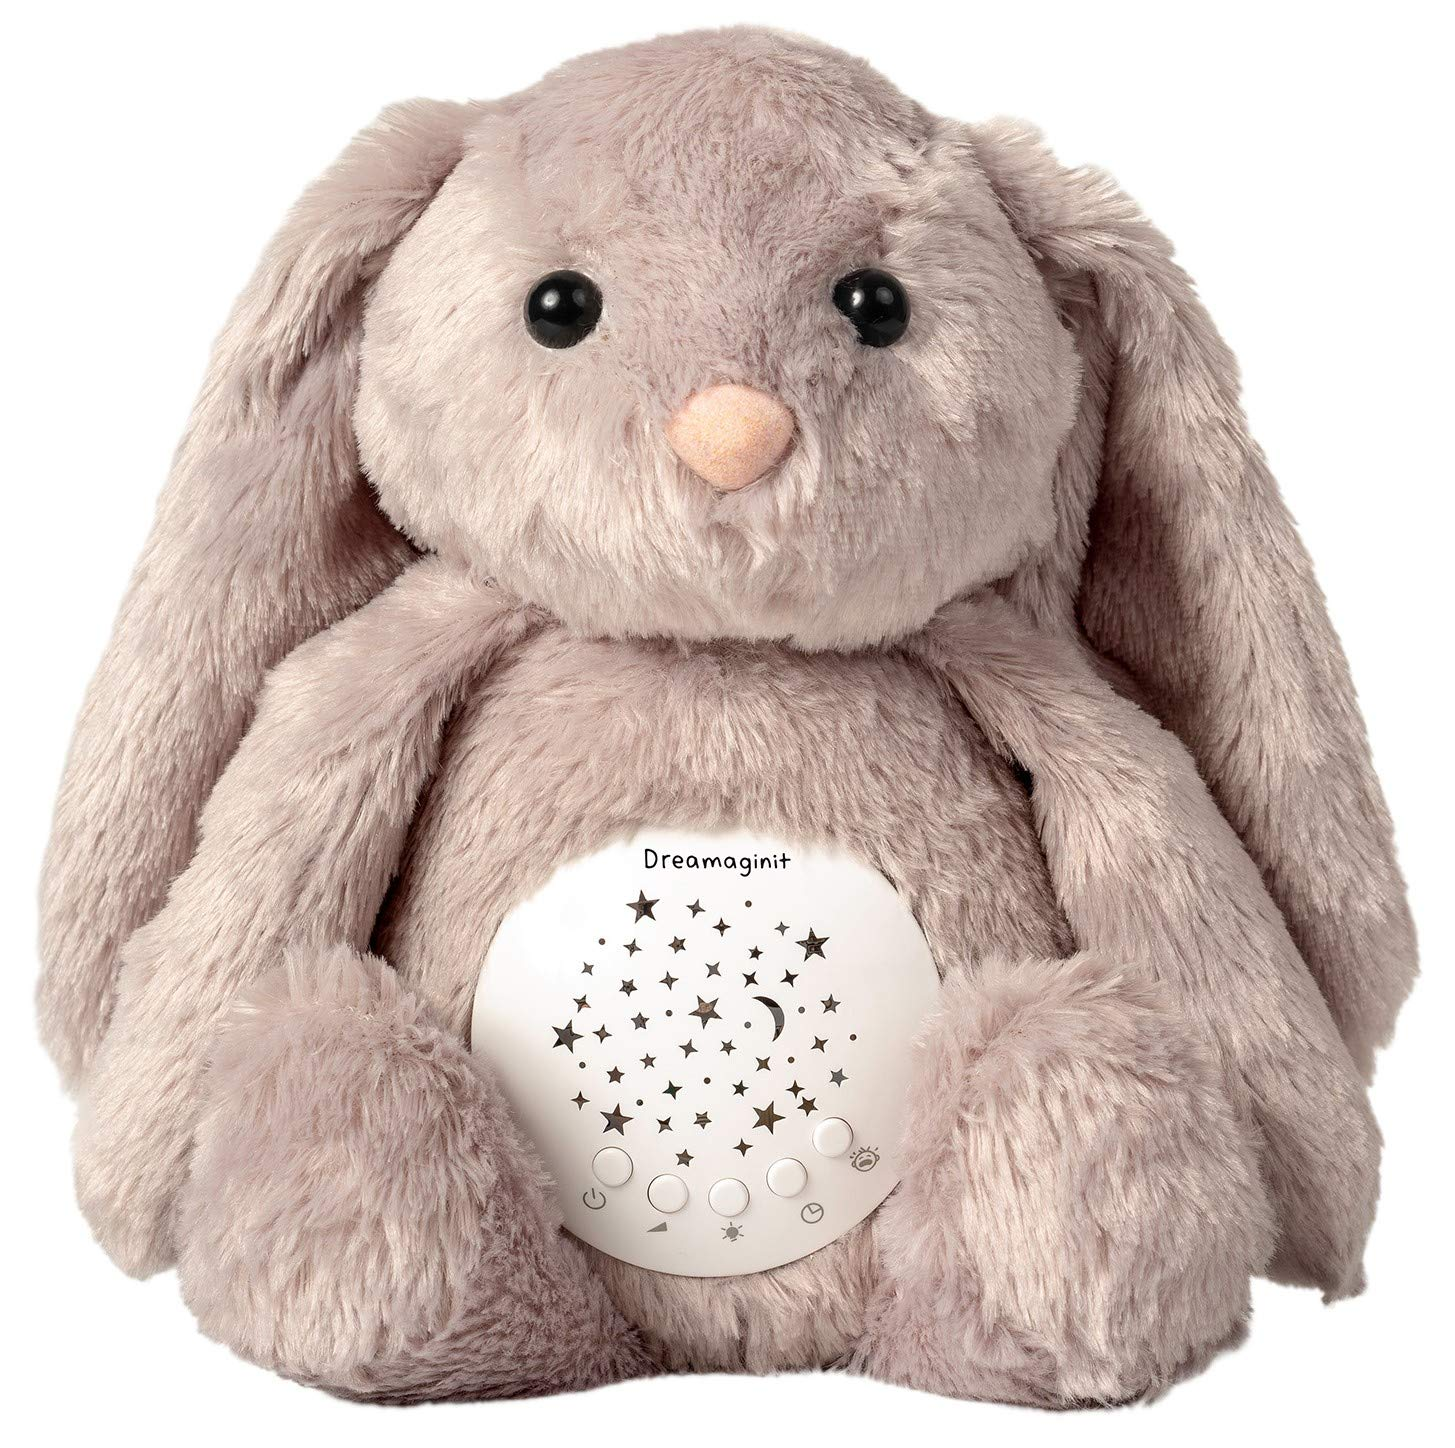 Dreamaginit Sound Machine and Night Light Projector/Baby Shusher, Lullabies and White Noise Soother/Portable Sleep Aid Toy/Nursery Décor Rabbit Stuffed Animal/Toddler and Baby Gifts